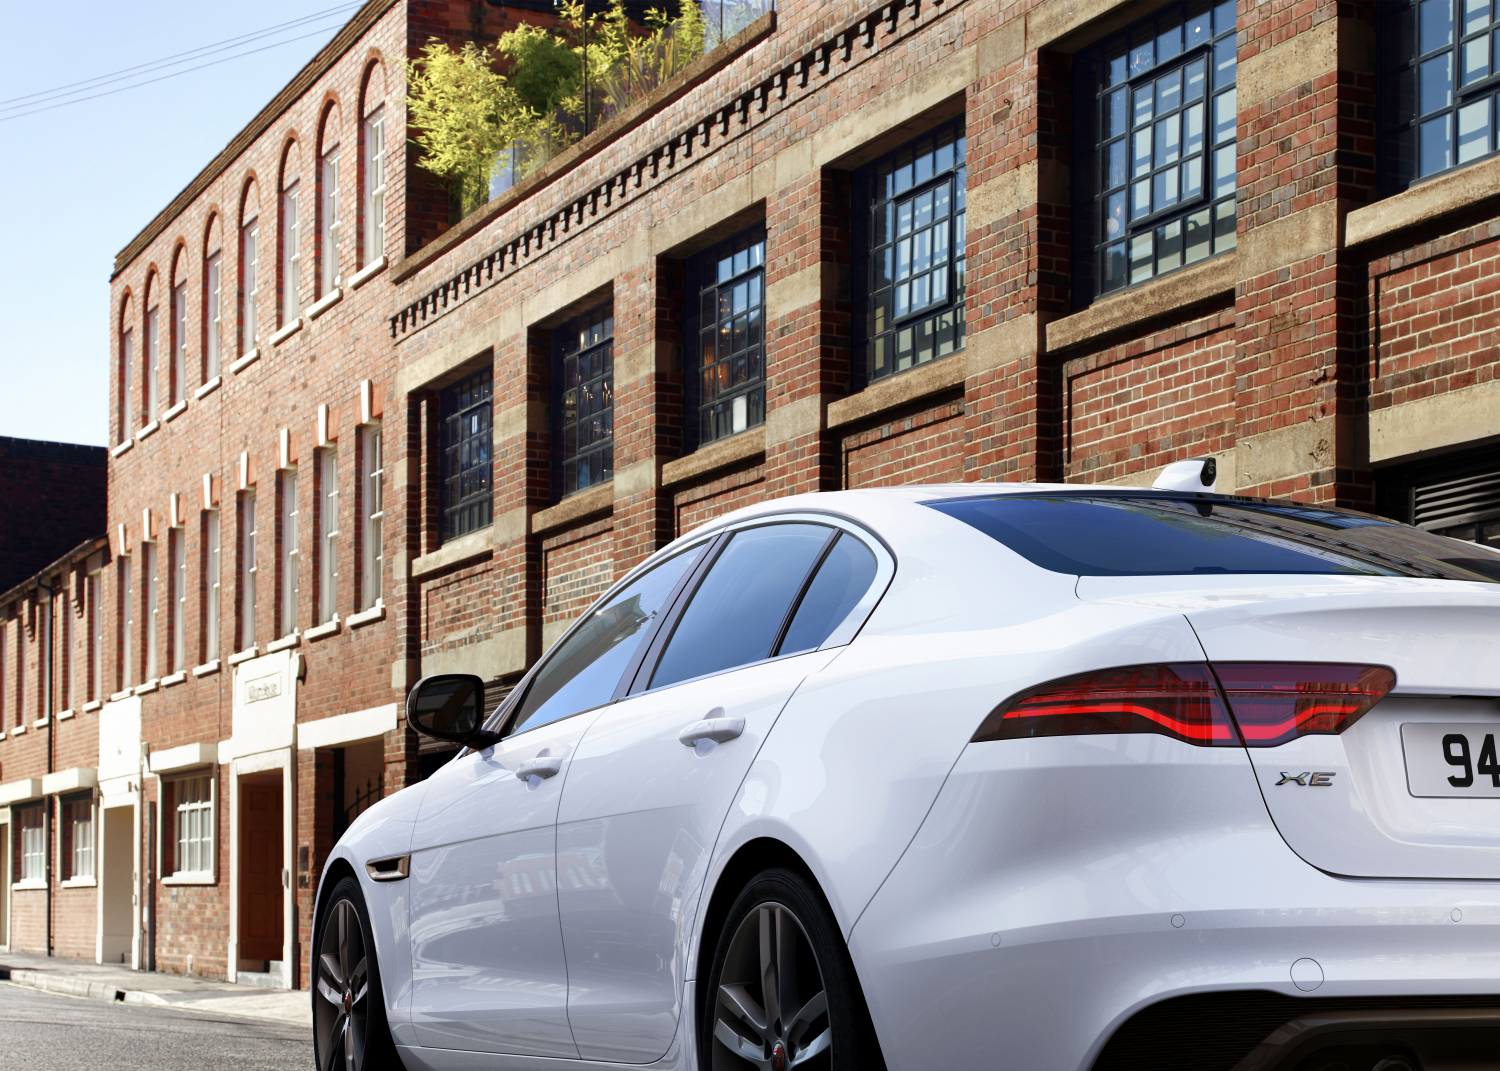 XE 21MY EXTERIOR IMAGE